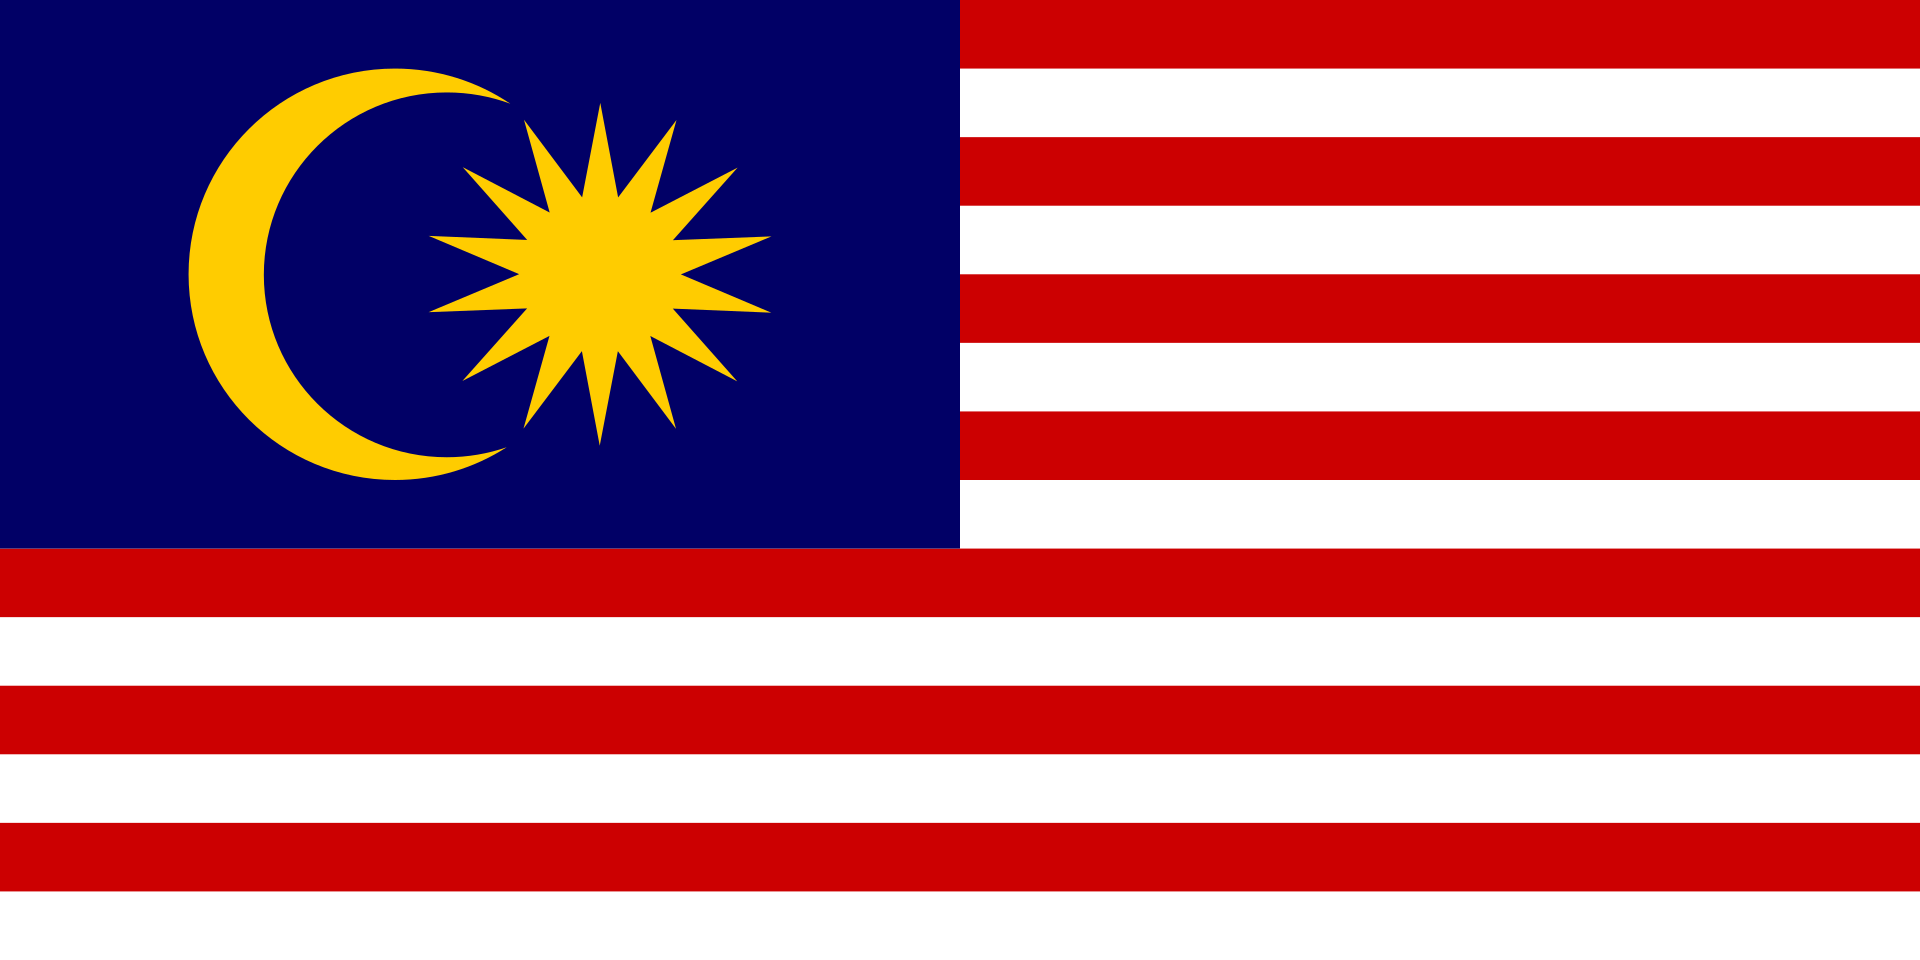 https://globalgen.co.id/wp-content/uploads/2019/02/Malaysia-Flag-1.png